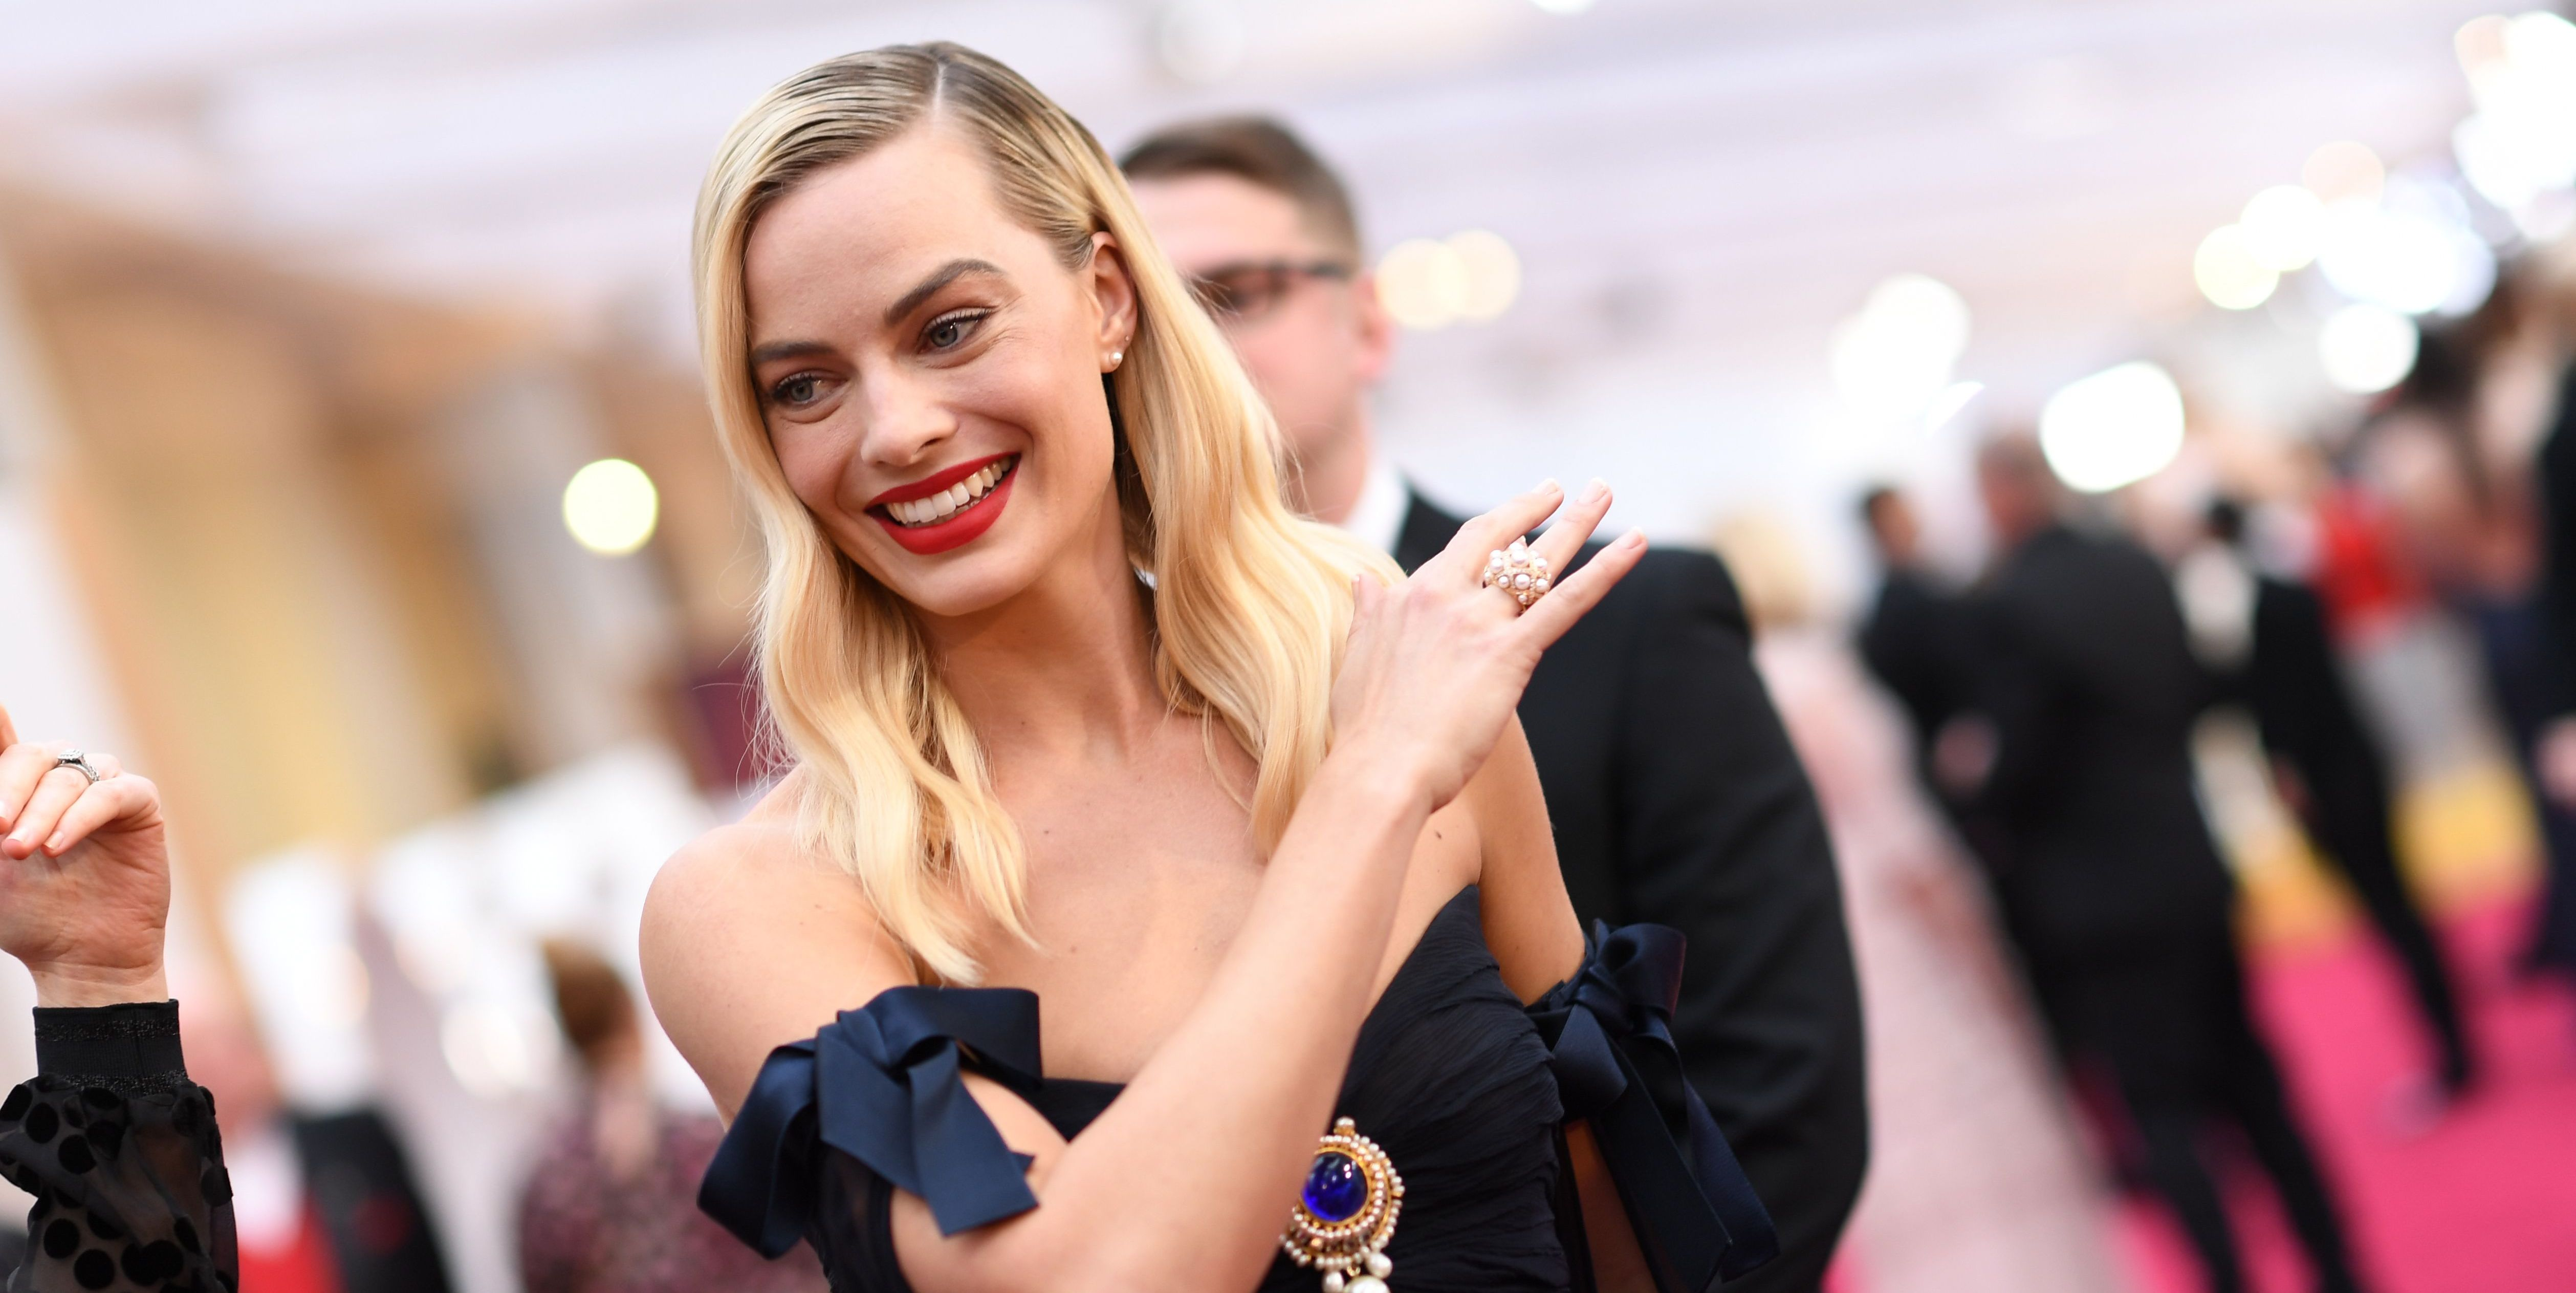 The 10 best dressed at the 2020 Oscars - harpersbazaar.com